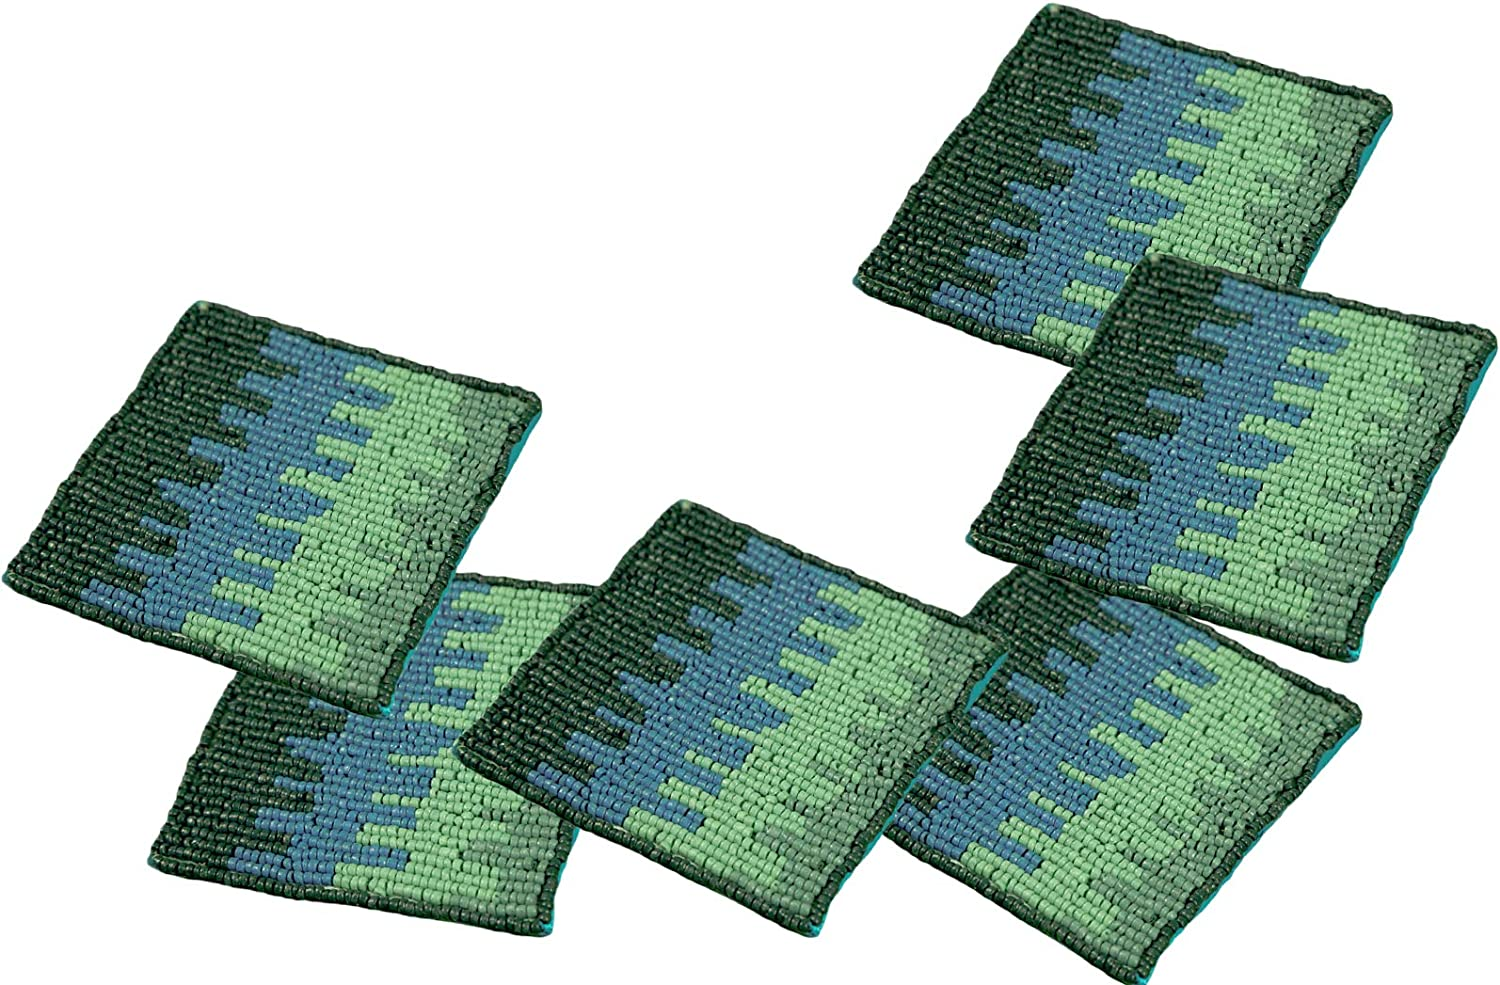 "POPULAR LIFE HOME Bennet Beaded Coasters | Hand Beaded Coasters with Satin Back, Decorative Dining Table Coasters, Blue & Green, 4 x 4"" (Set of 6)"